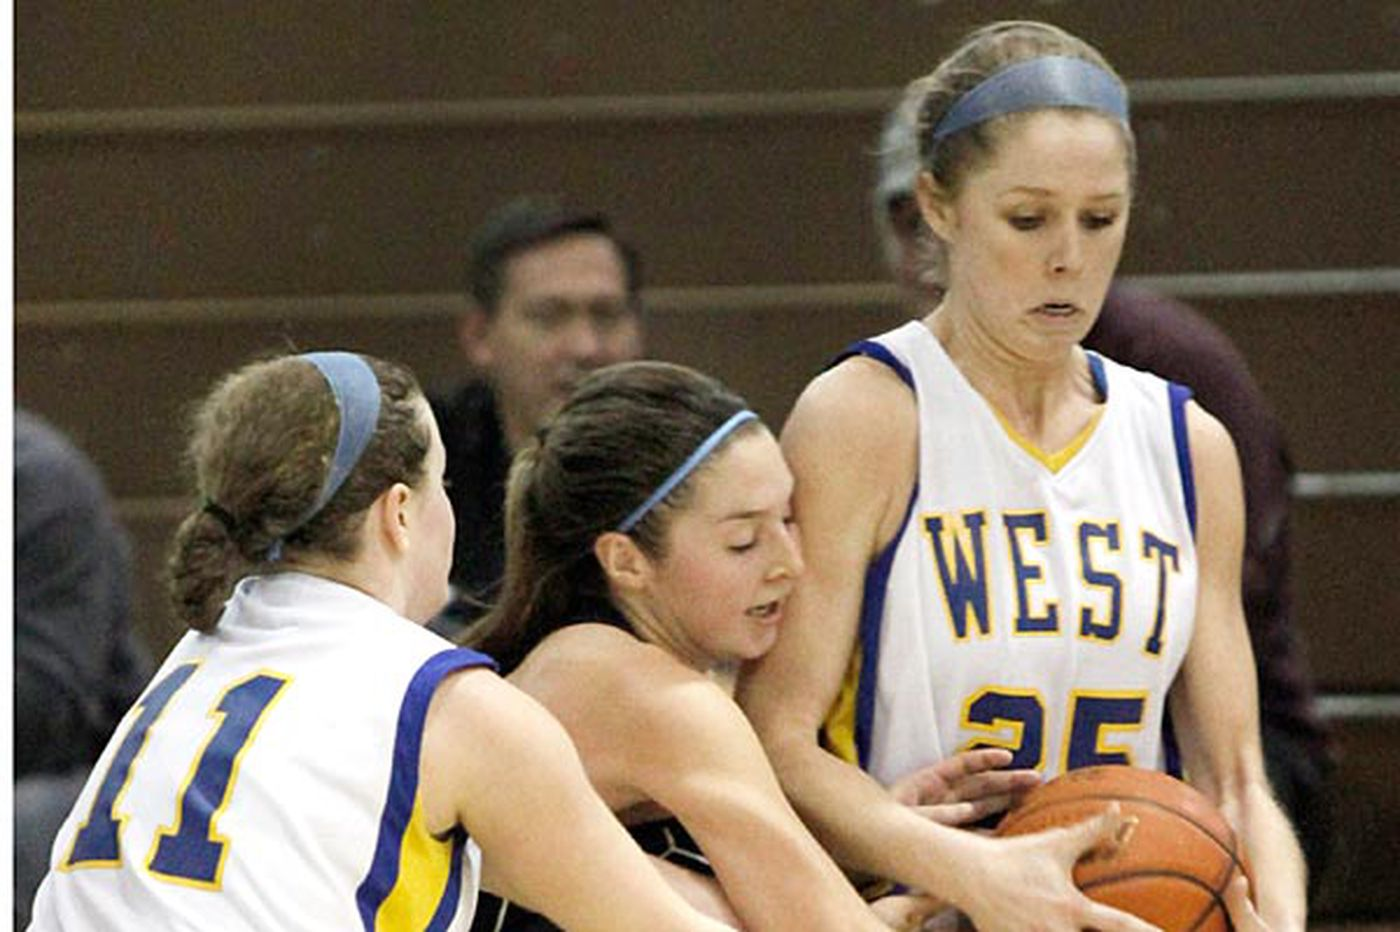 Maddie Dew settles into point guard role for Downingtown West